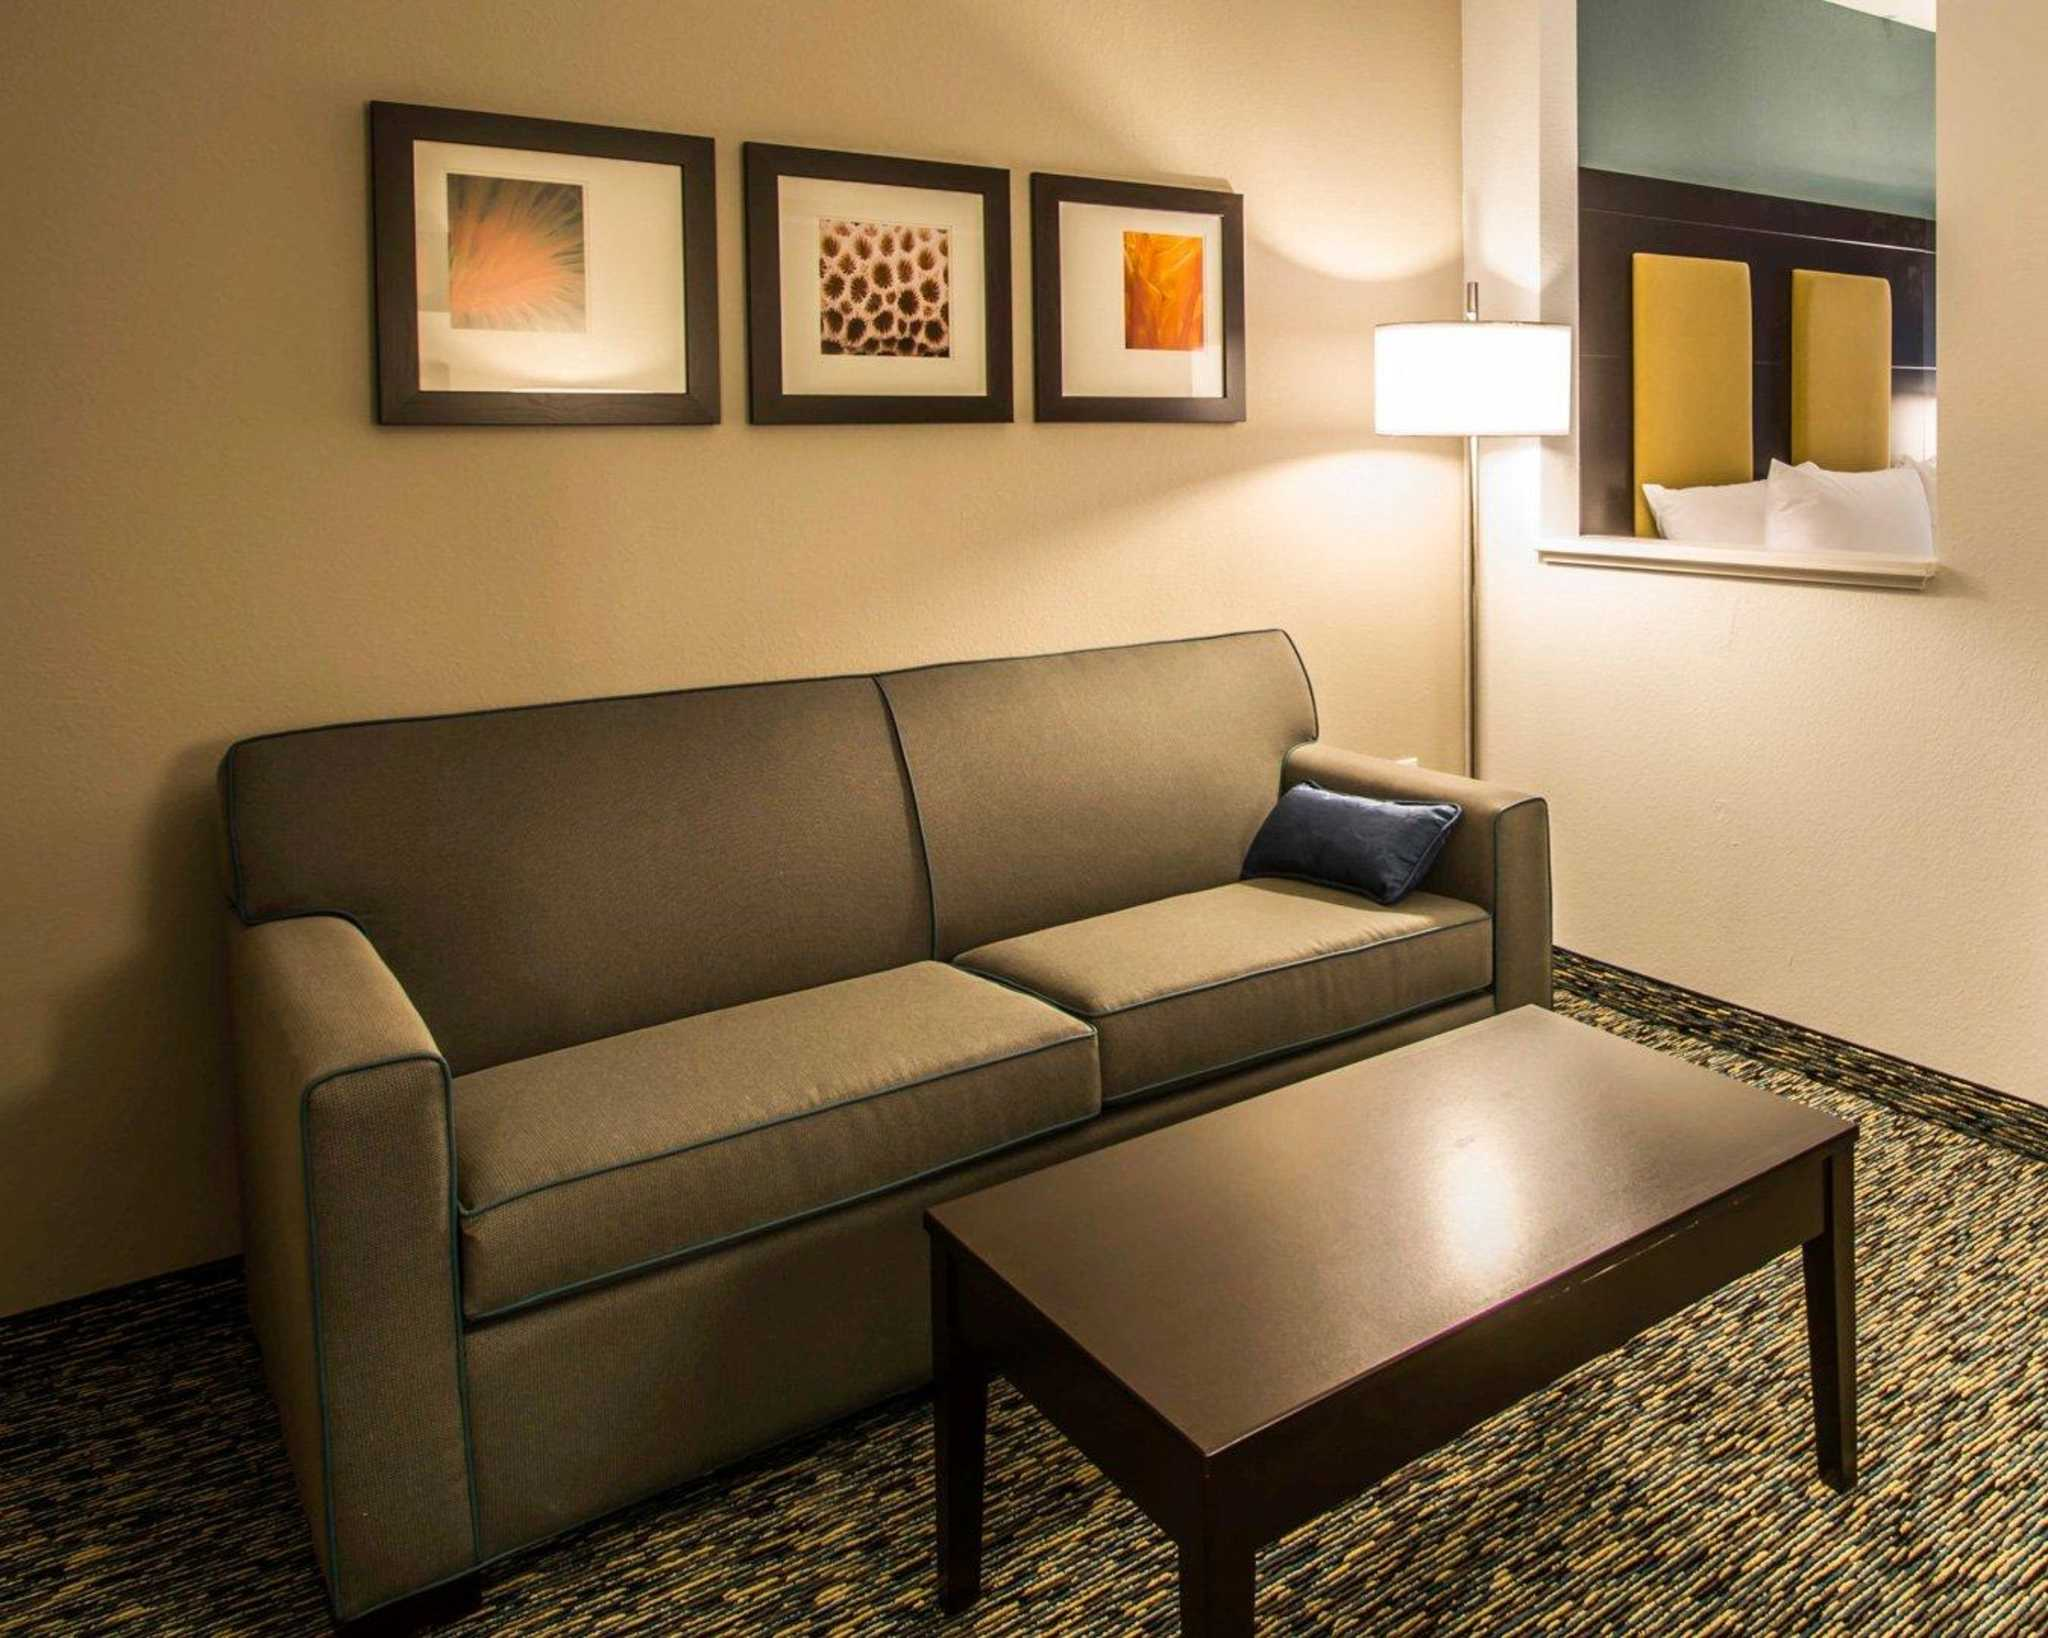 Comfort Suites Fort Lauderdale Airport South & Cruise Port image 24